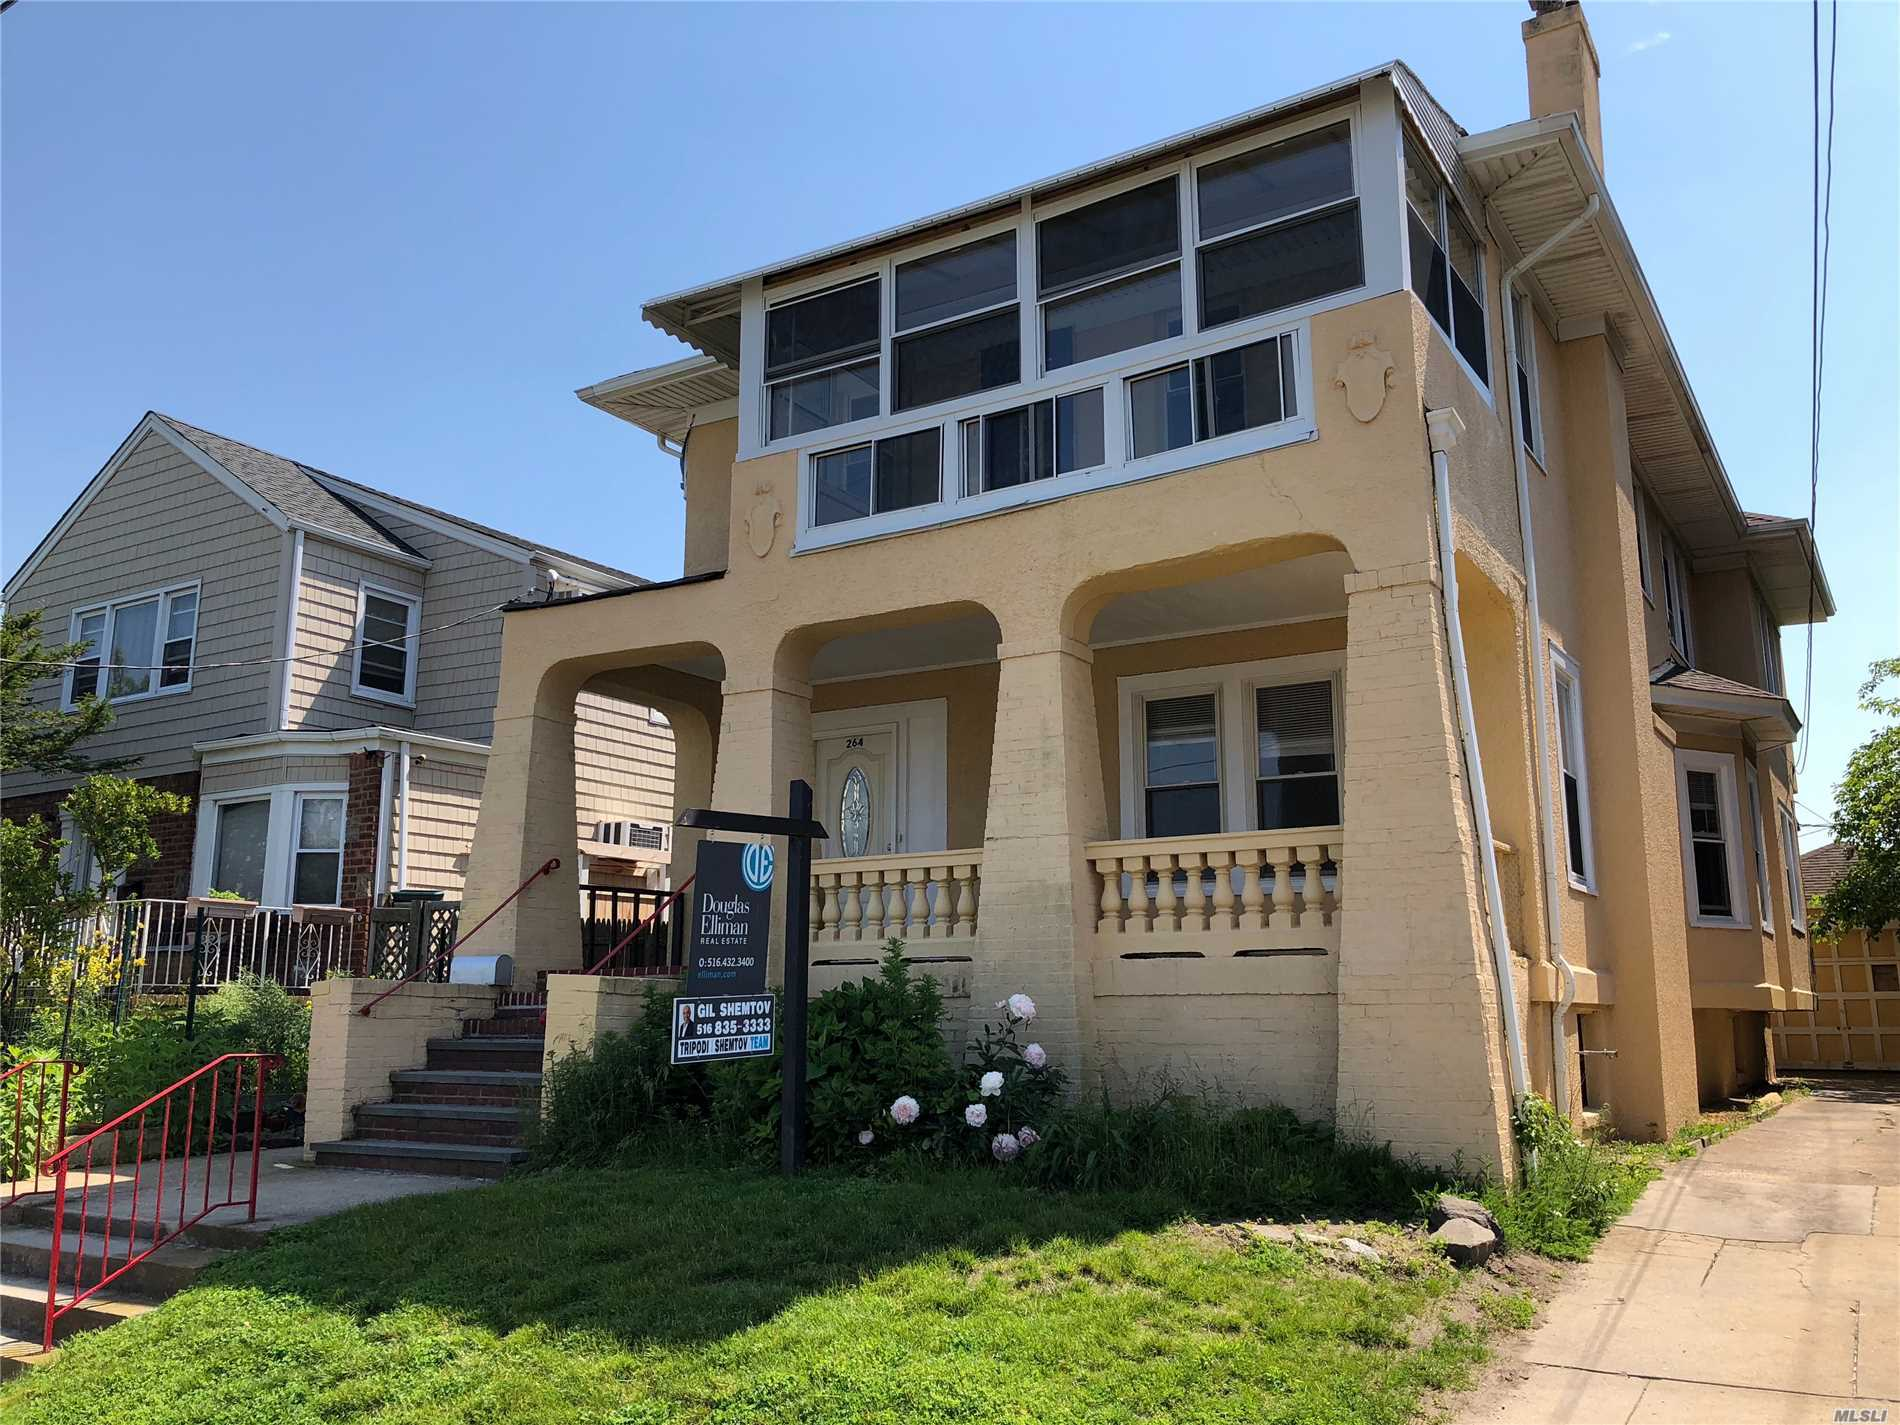 264 Laurelton Blvd - Long Beach, New York